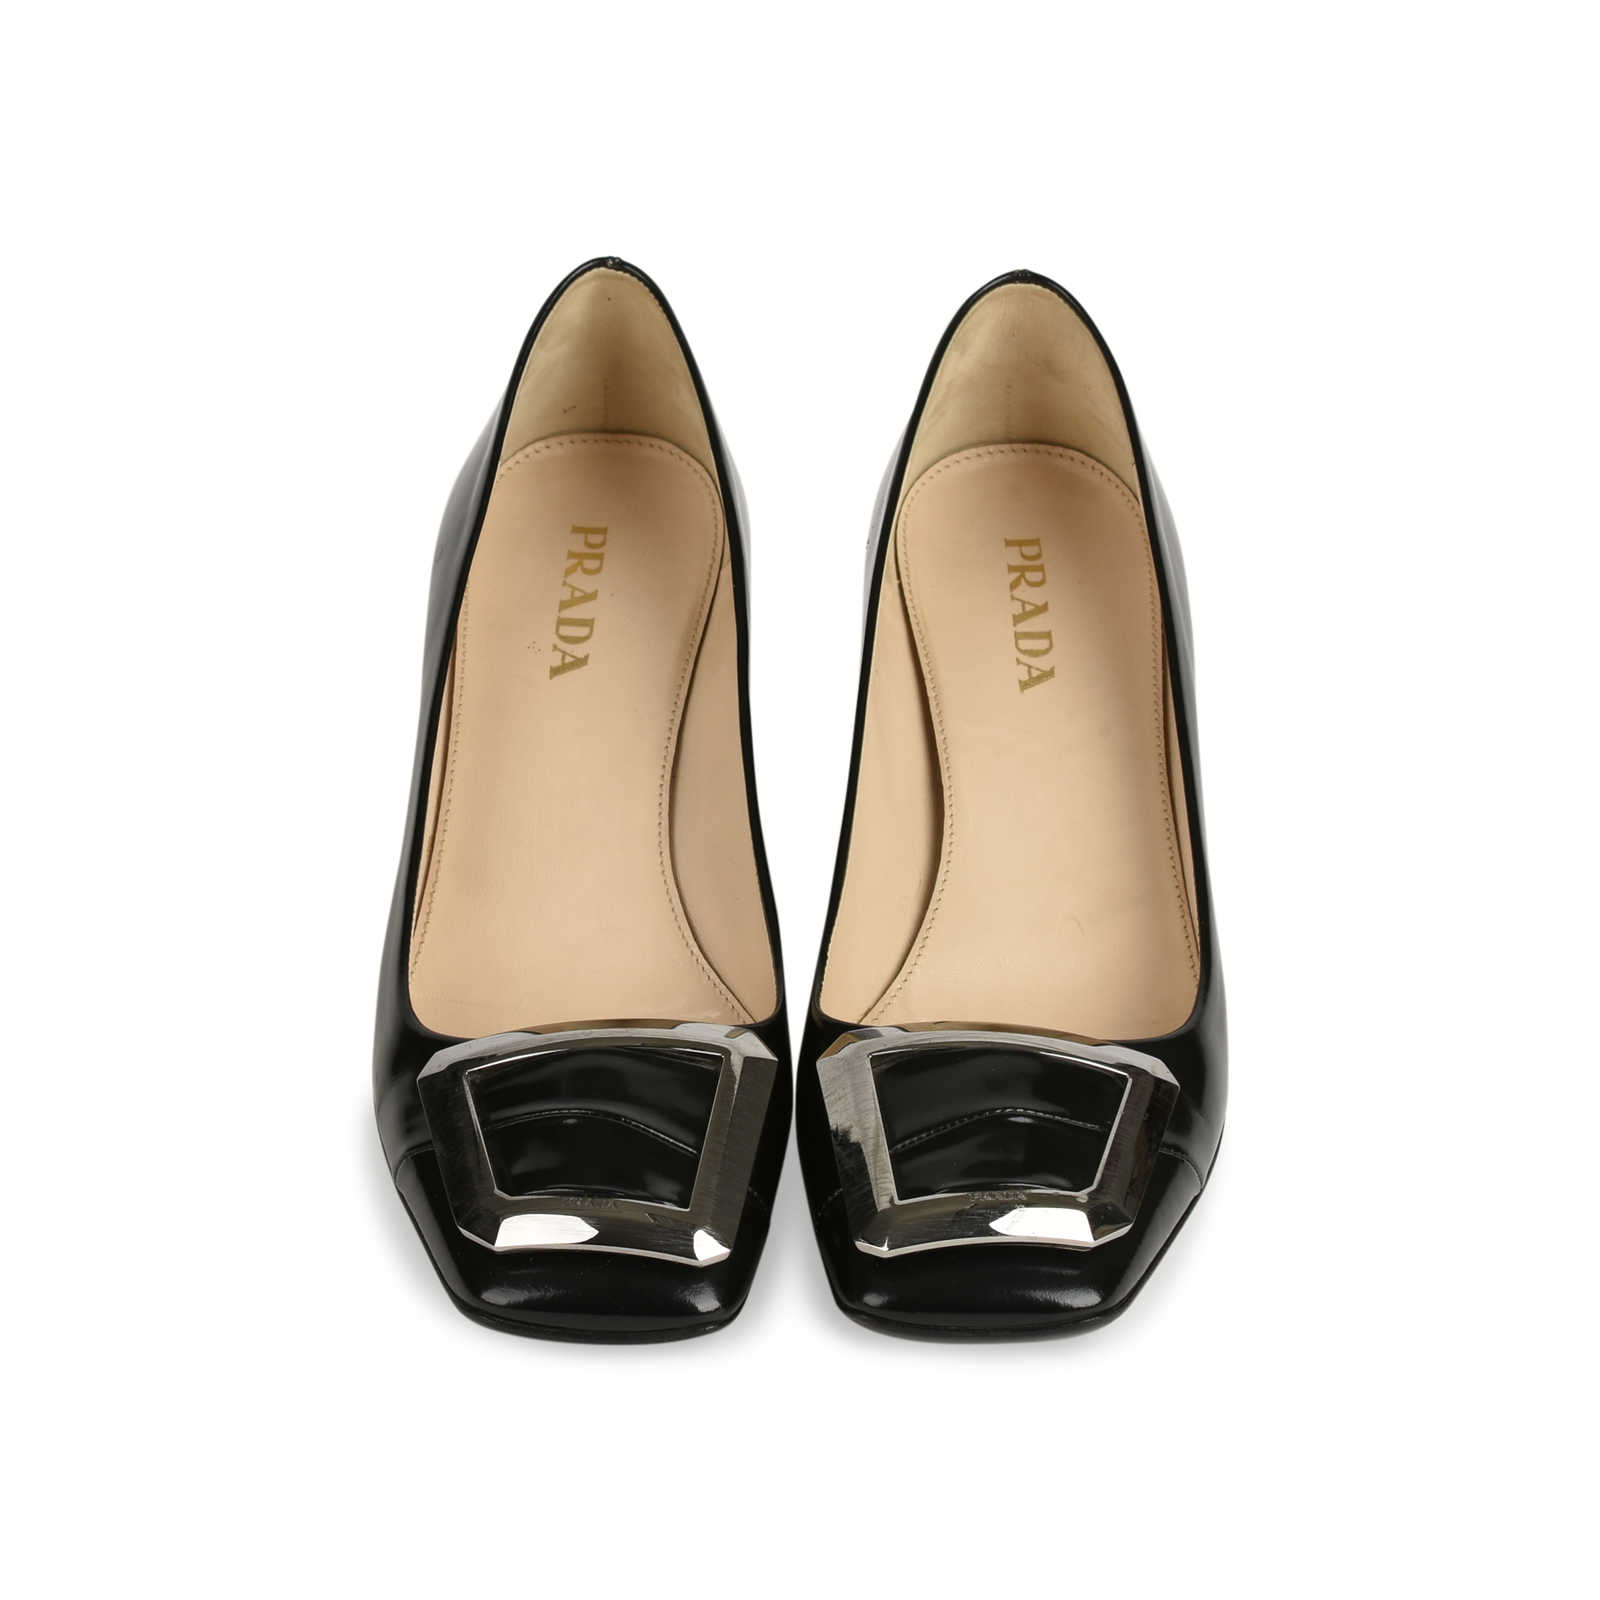 Prada Patent Leather Square-Toe Flats w/ Tags Free Shipping Hot Sale Best Authentic Cheap Sale Footlocker 89KsROb2fA